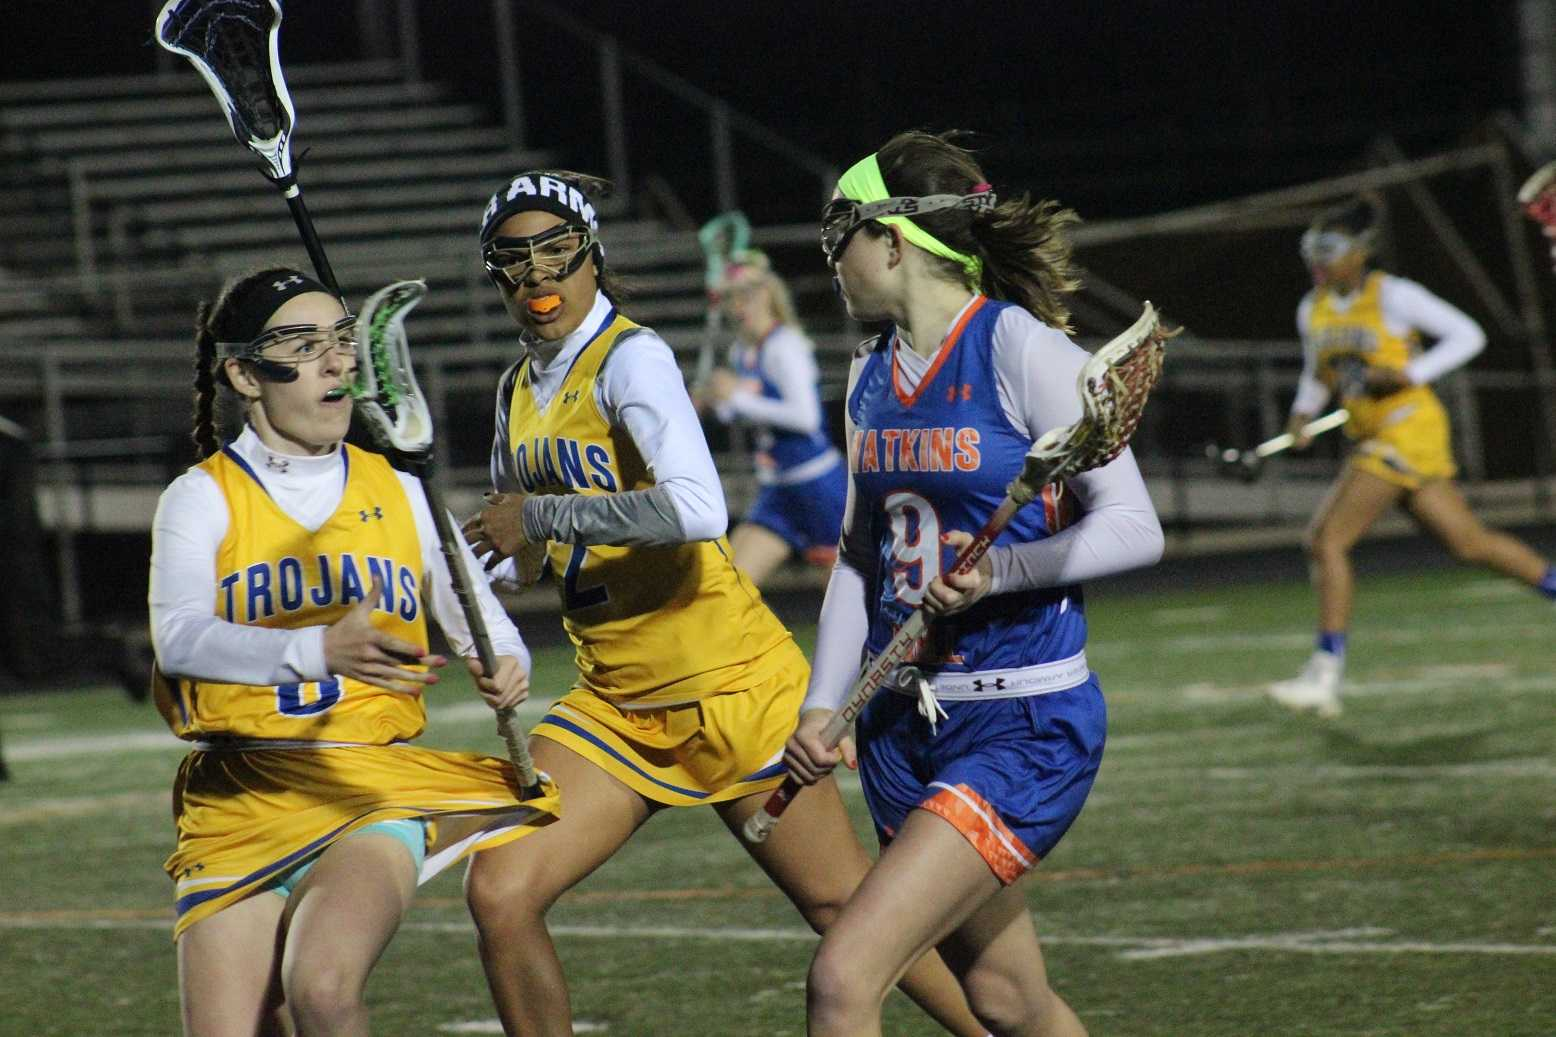 Sophomore Katherine Campbell runs the ball down the field while defending it against Gaithersburg Trojans